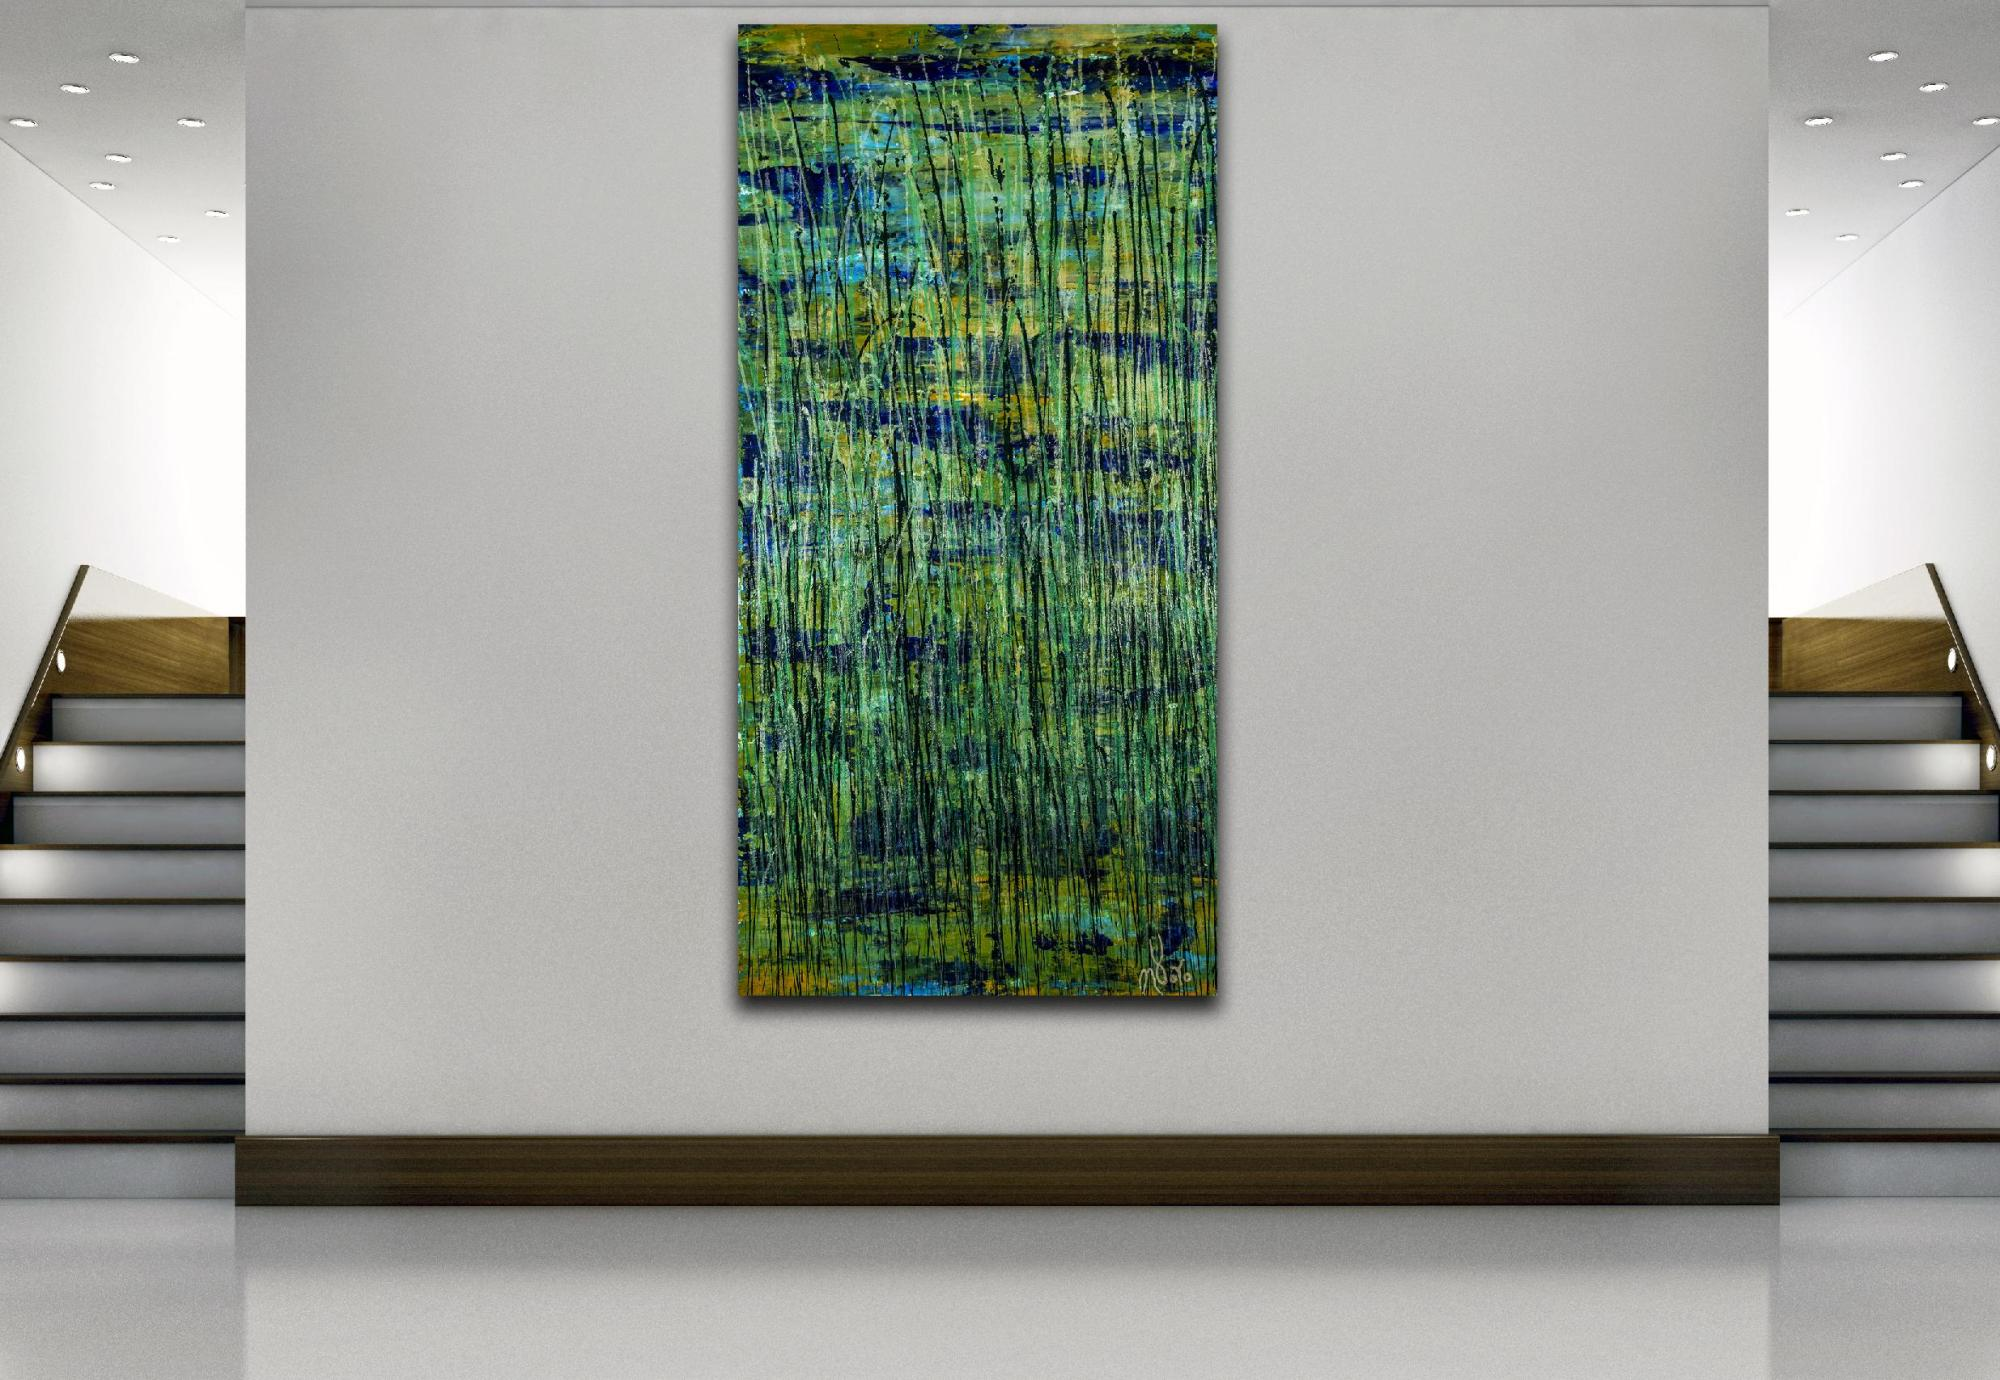 Room example - Green forest (Silver lights intrusions) (2021) by Nestor Toro